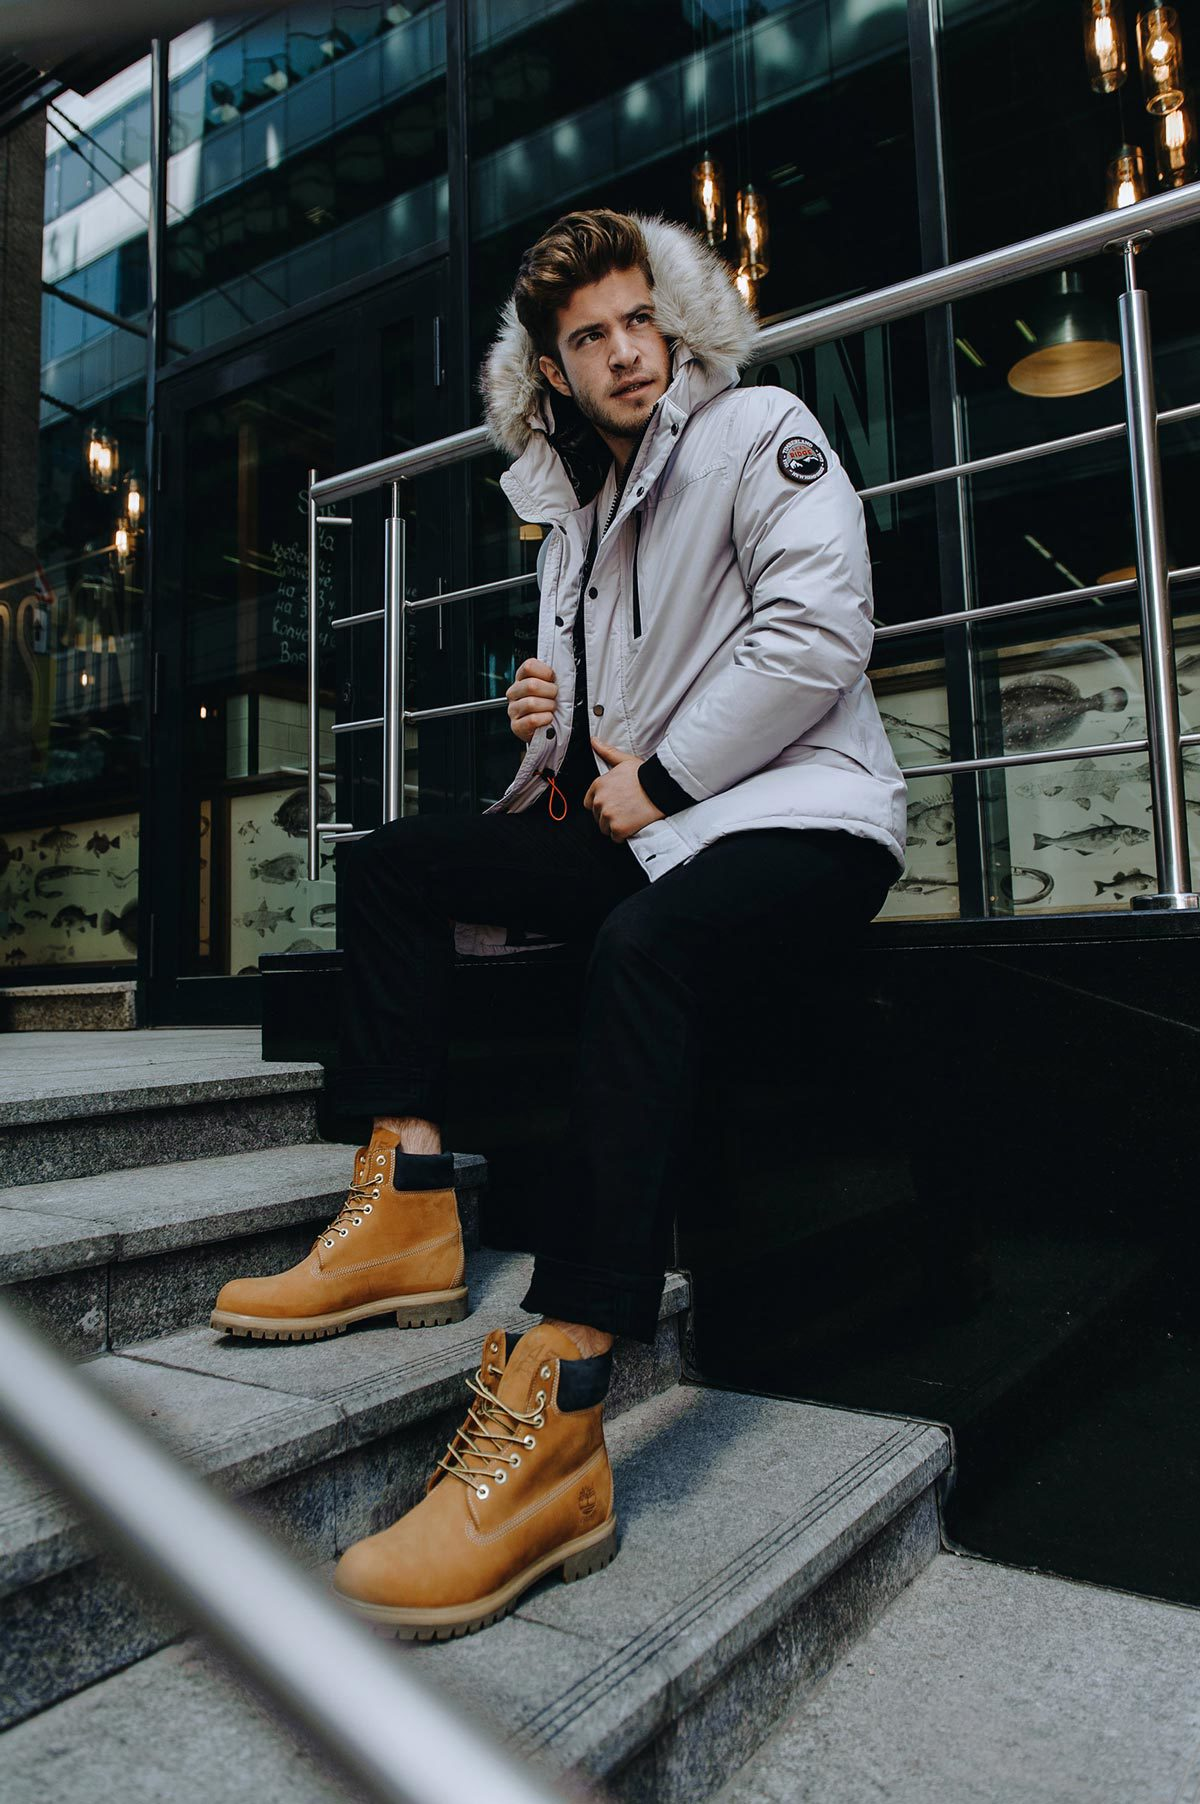 Man in winter coat and boots posing on staircase outside glass building.